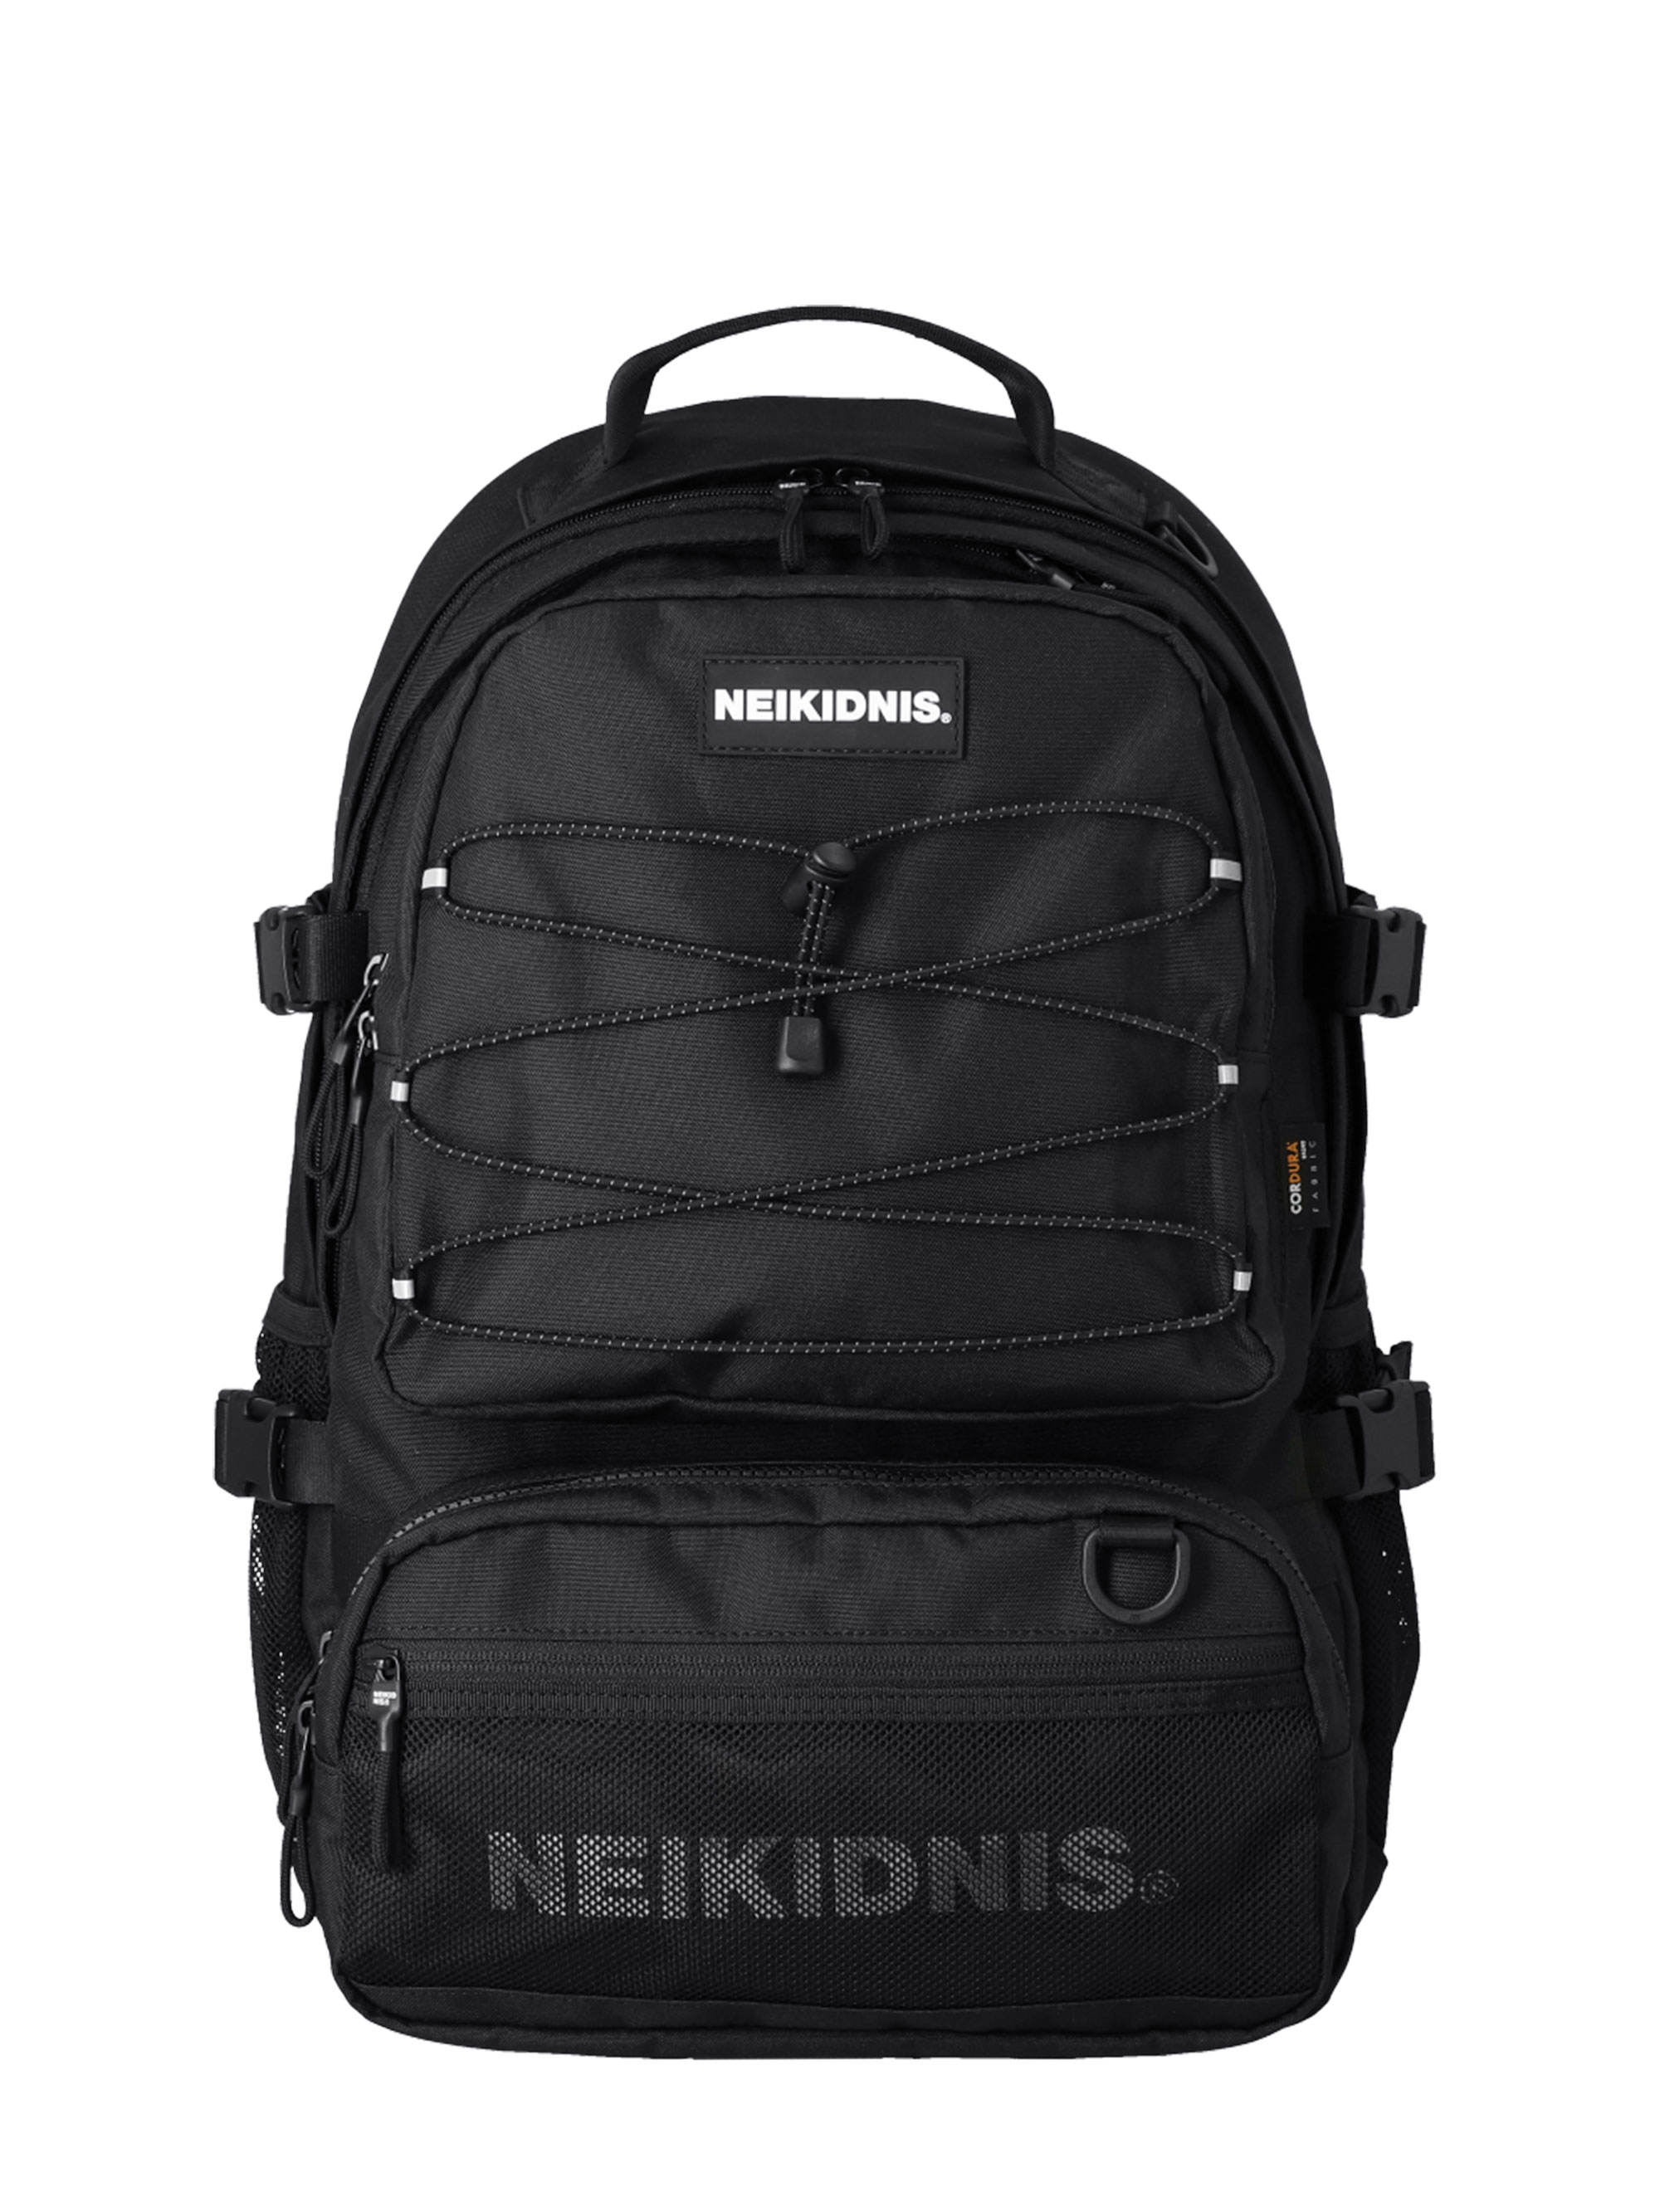 BUMPER BACKPACK / BLACK